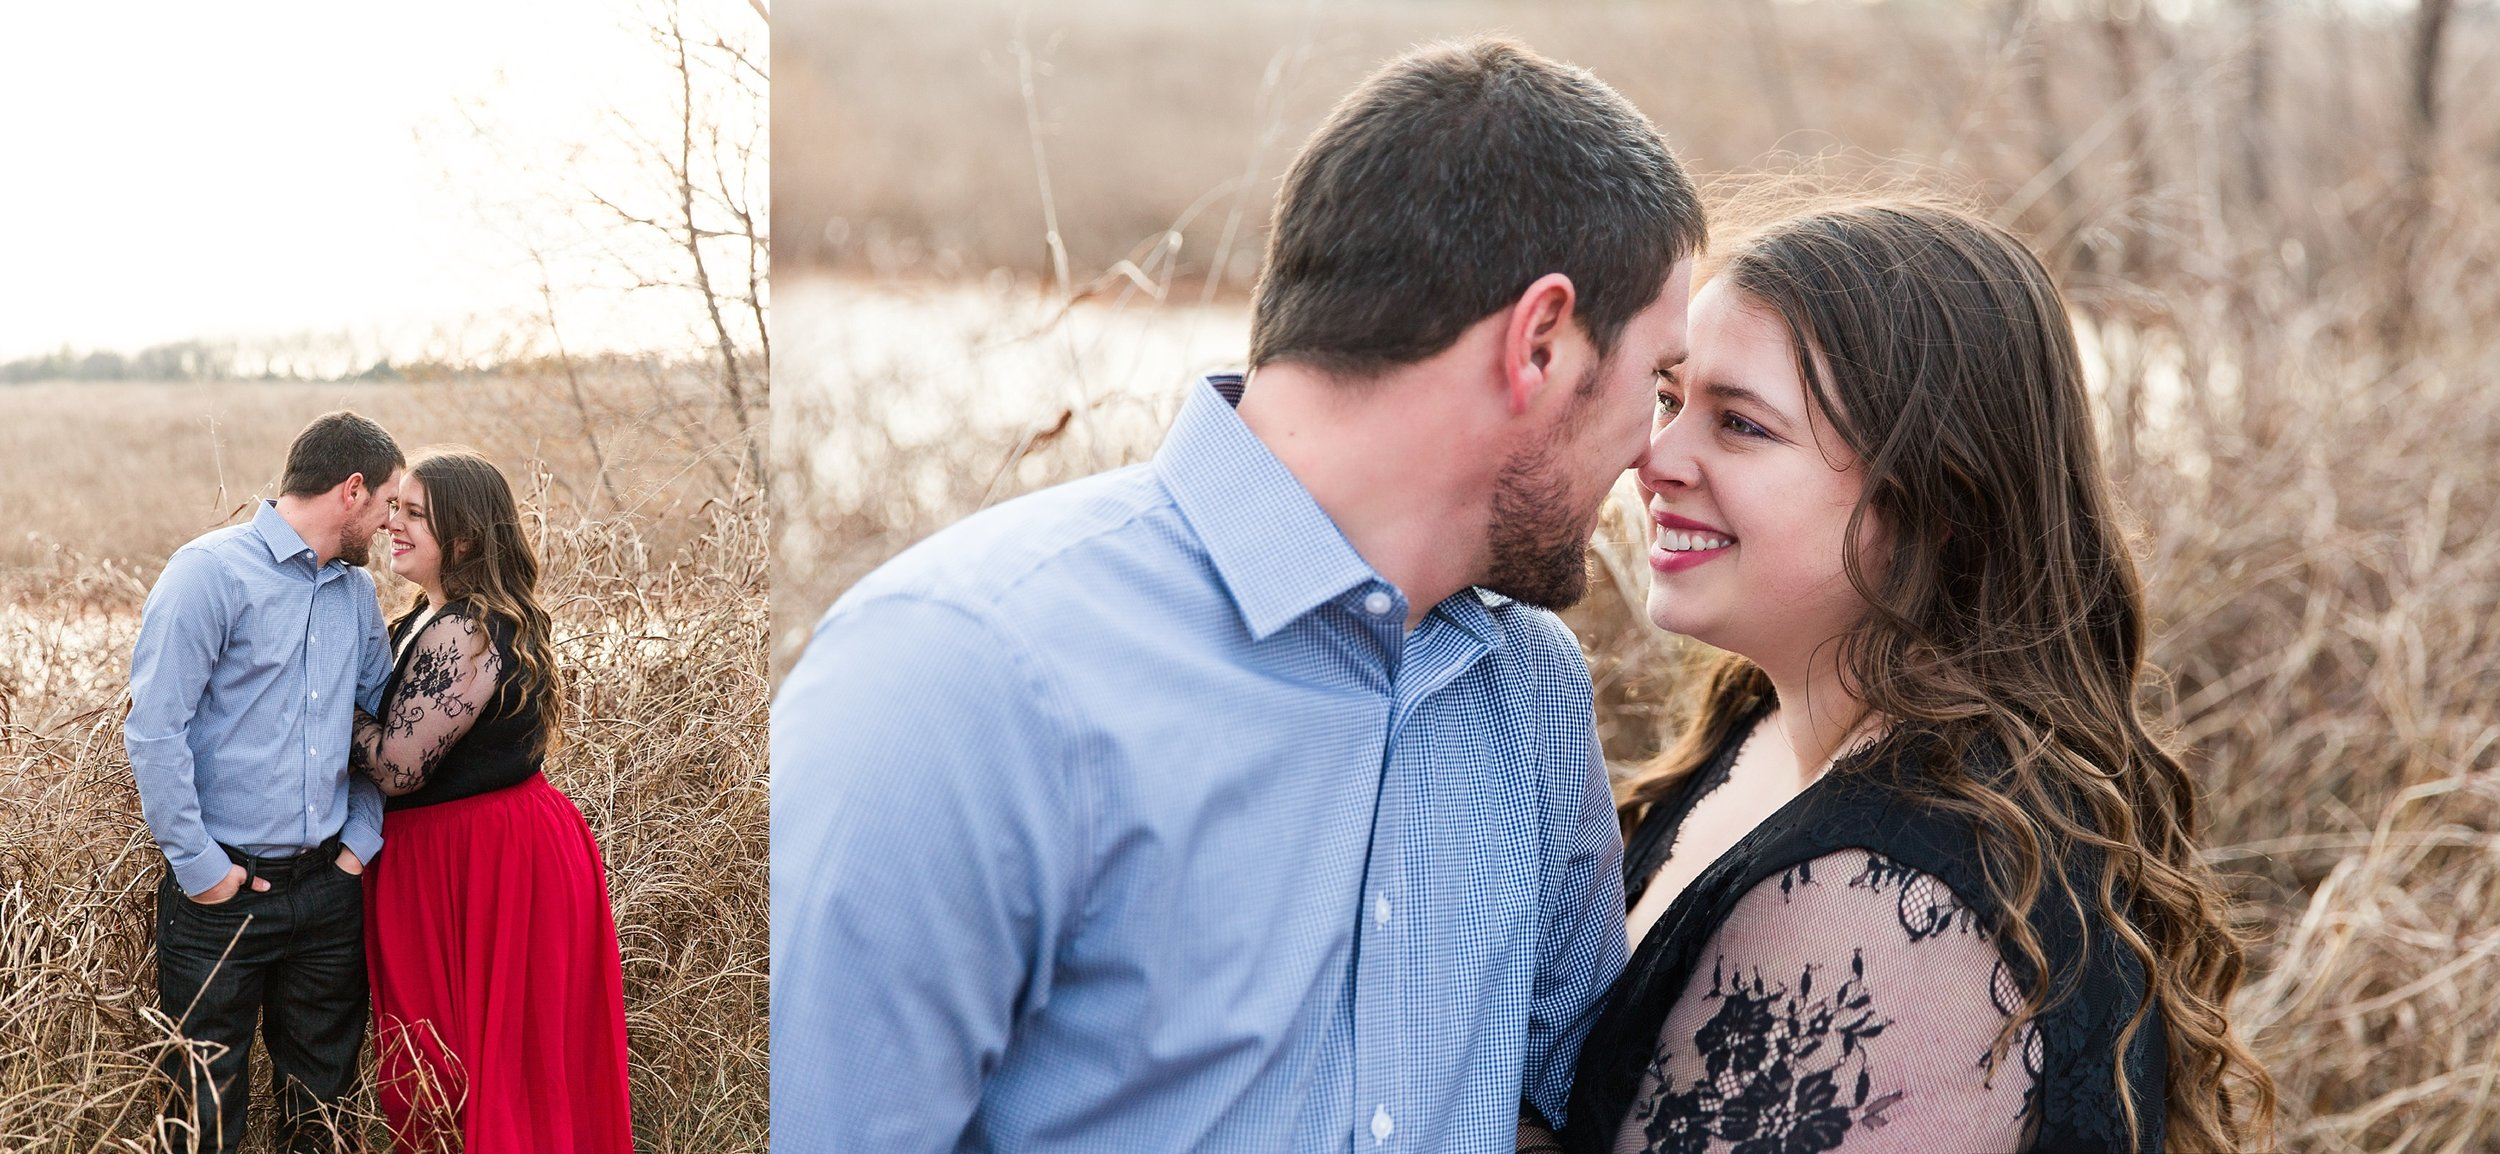 Fall Engagement at The Baumberhof Jessica McBroom Photographer